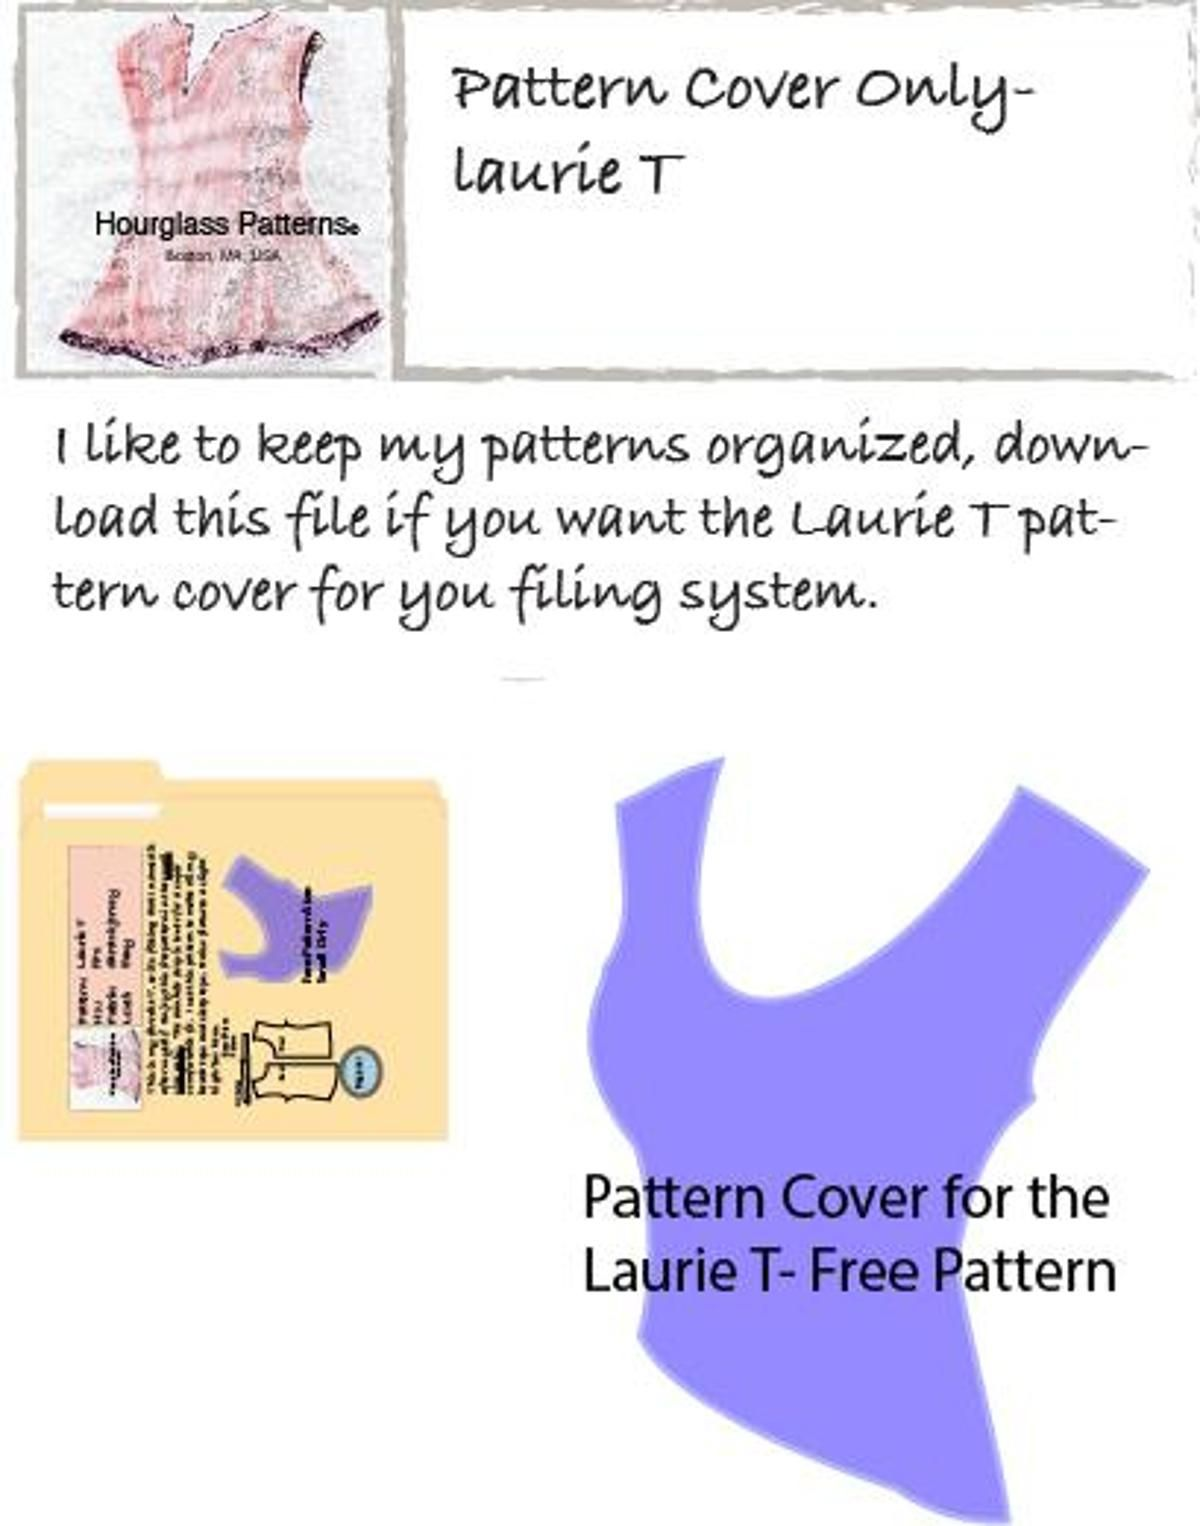 Pattern Cover for Free Laurie T | Sewing Patterns | Pinterest